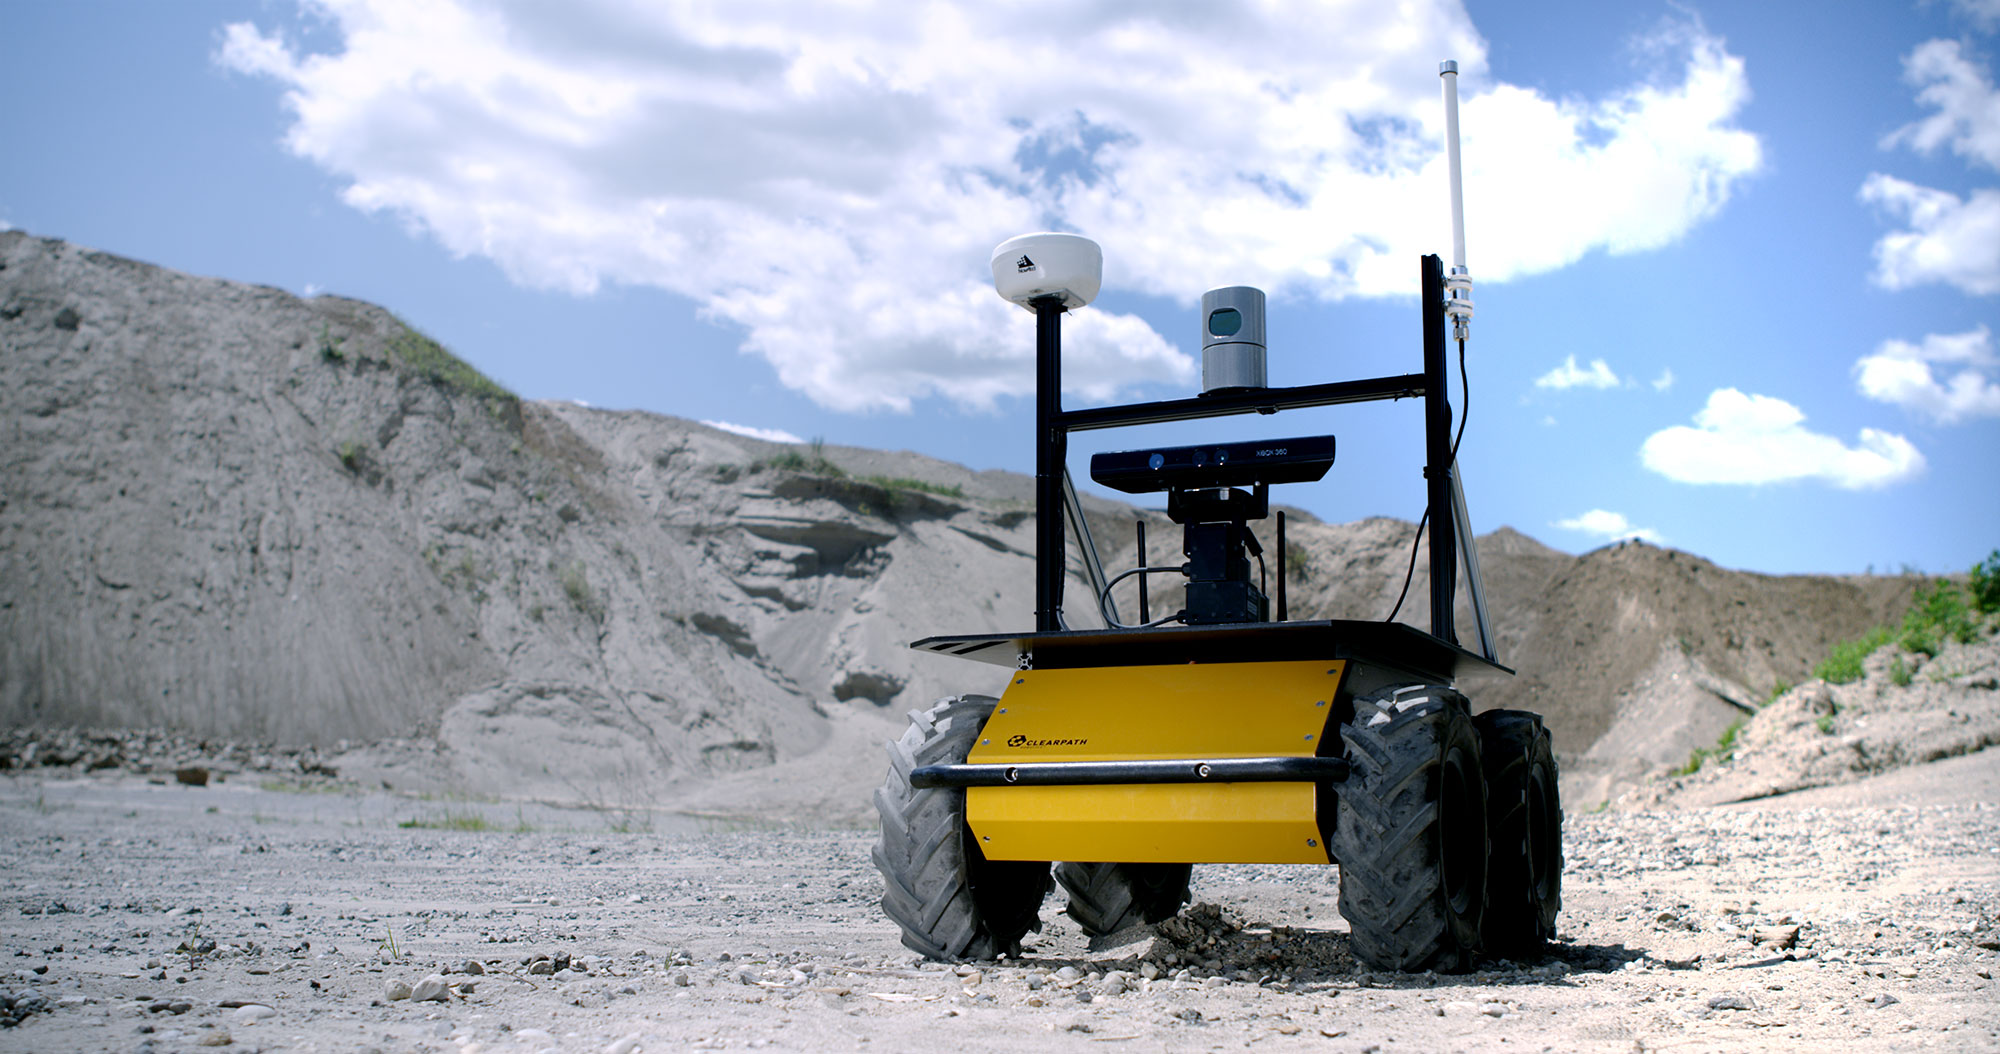 Husky Ugv Outdoor Field Research Robot By Clearpath Wiring Diagram Easy Simple Routing Starter Relay Gallery